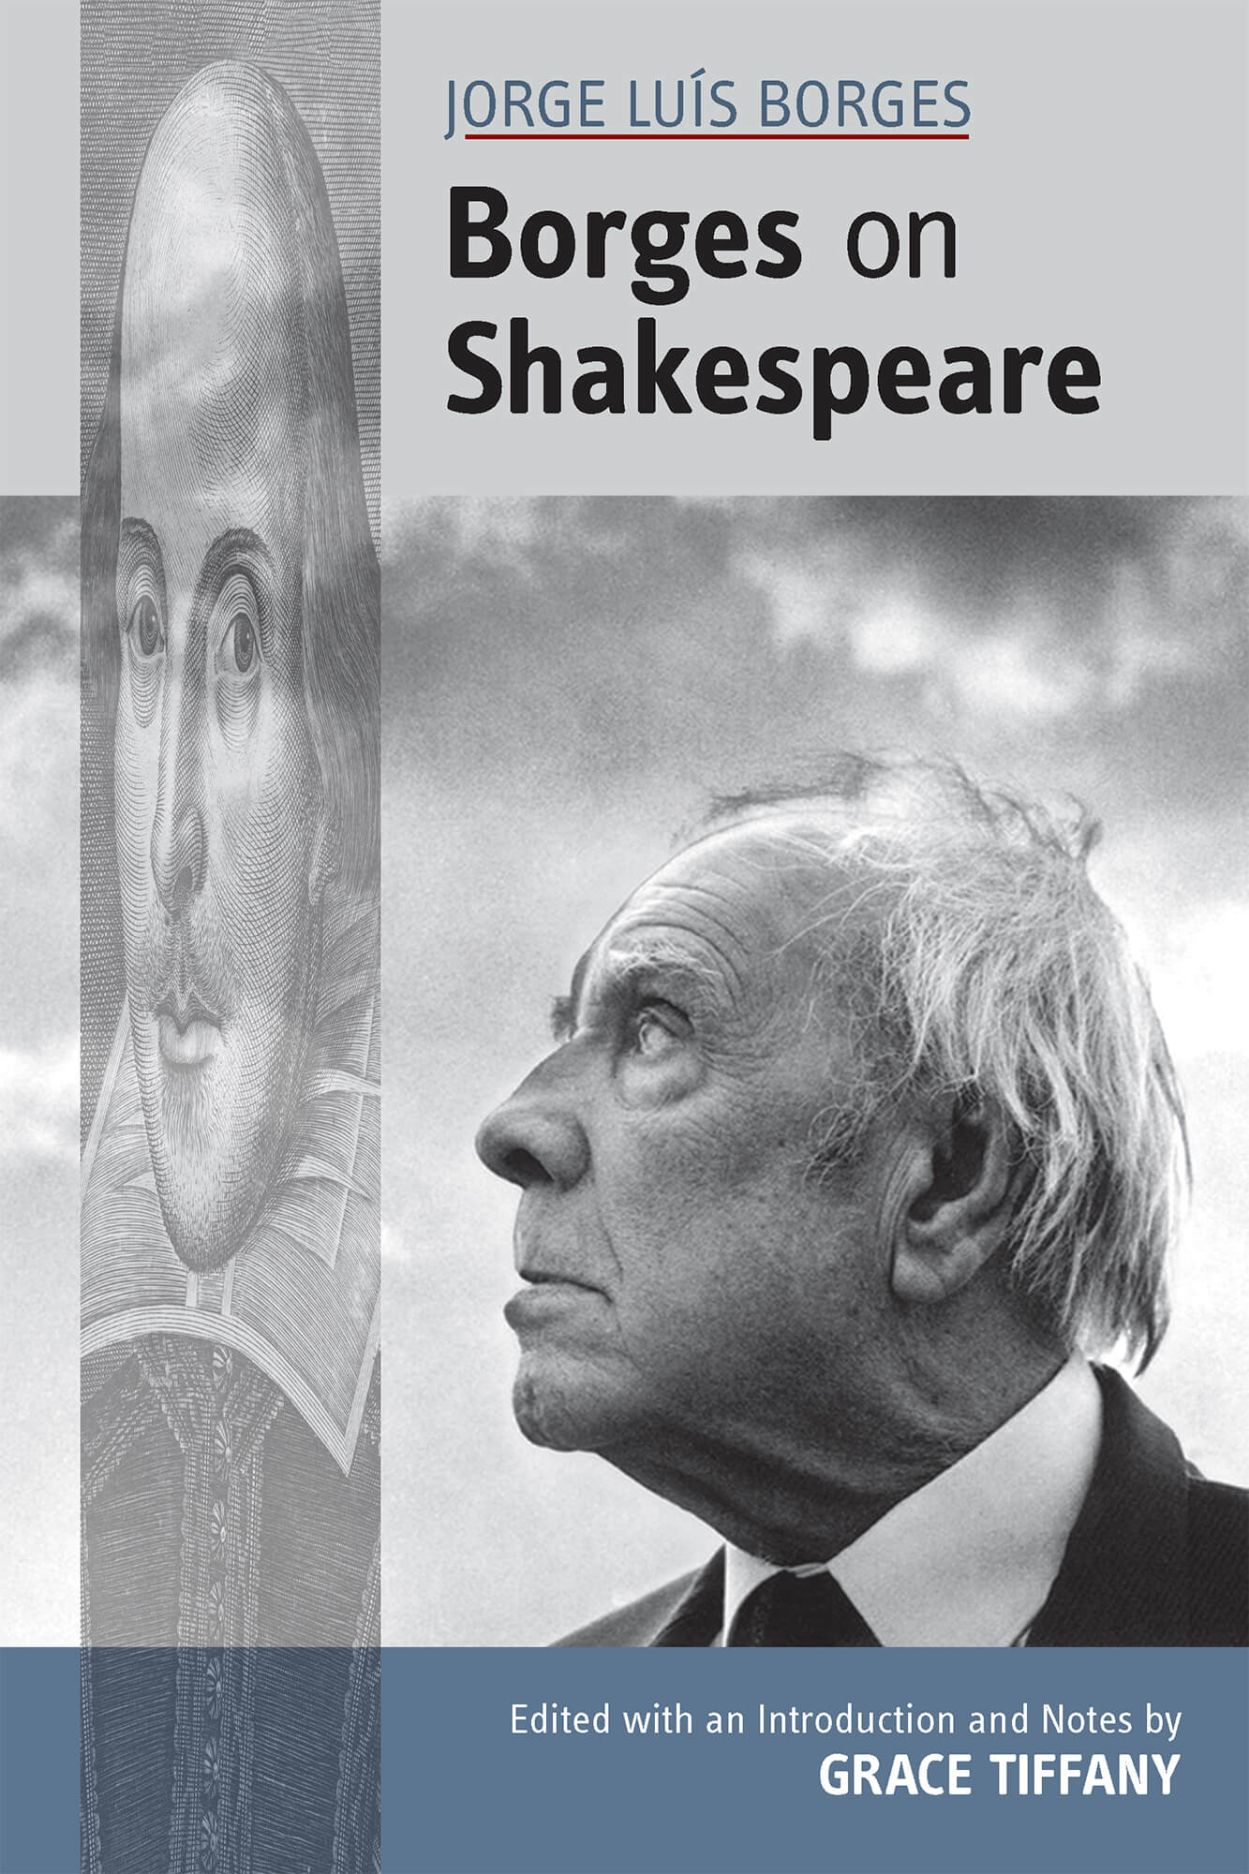 Jorge LuIs Borges: Borges on Shakespeare